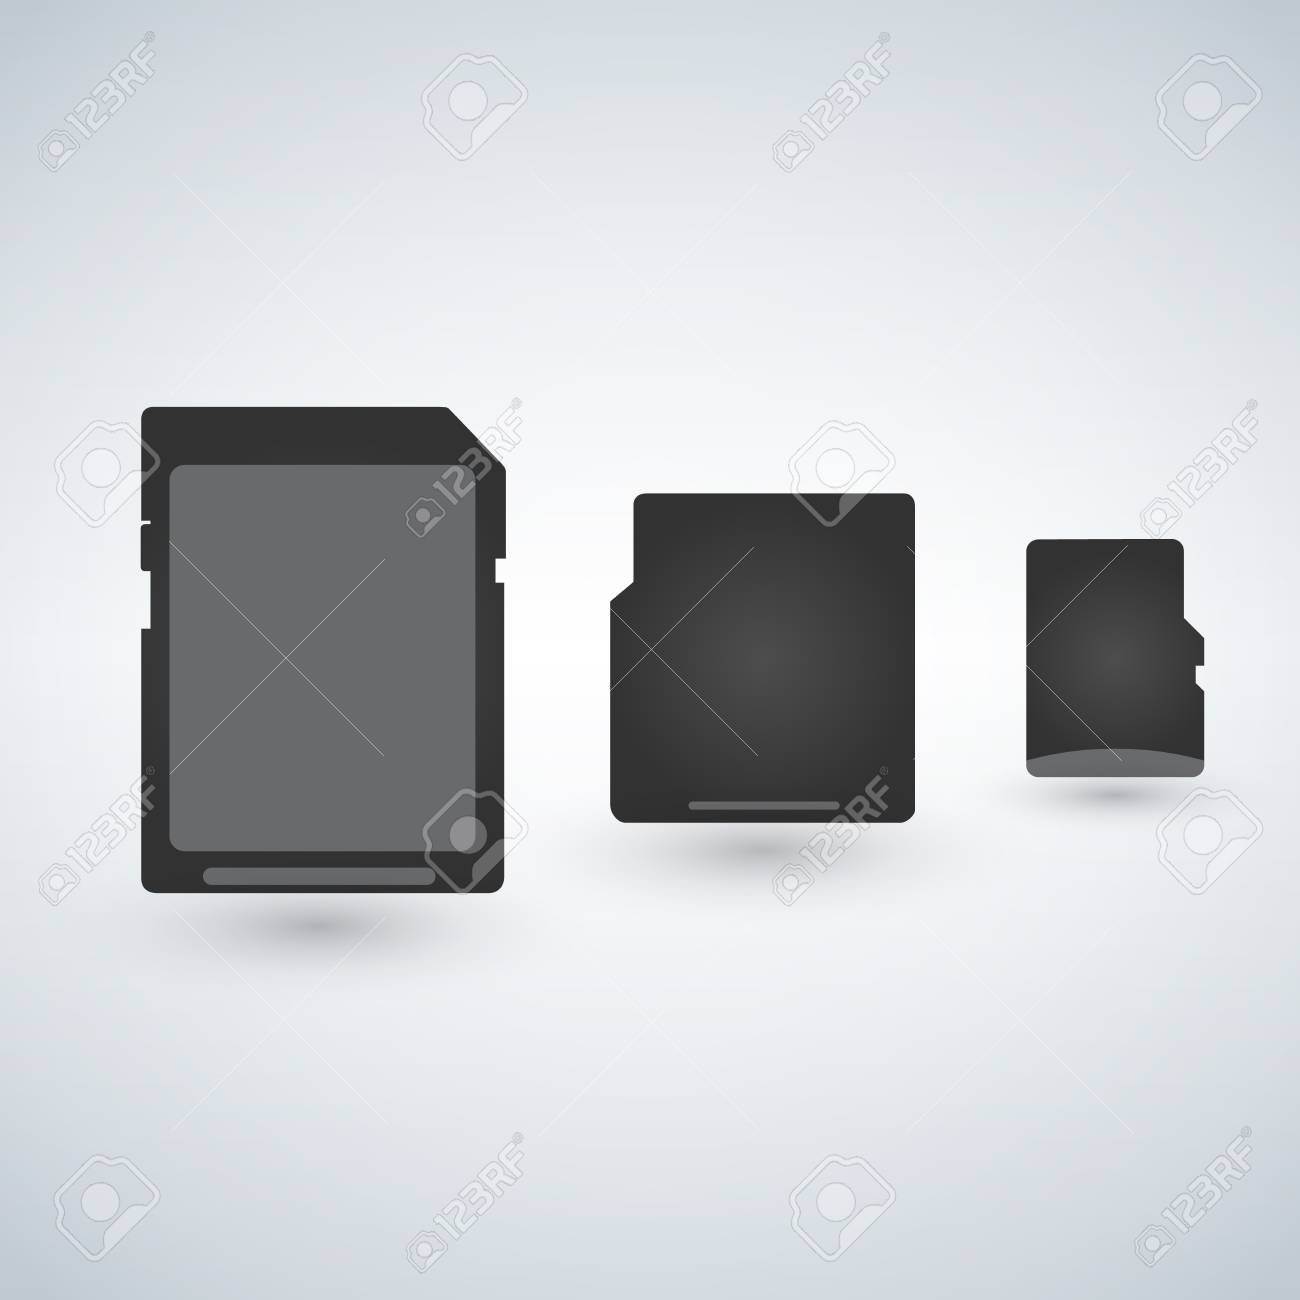 Affordable Sdhc Sdxc Cards Icons Vector Royalty Sdhc Vs Sdxc Gopro Sdhc Vs Sdxc Uhs I Sdxc Cards Icons Vector Stock Vector Sdhc dpreview Sdhc Vs Sdxc